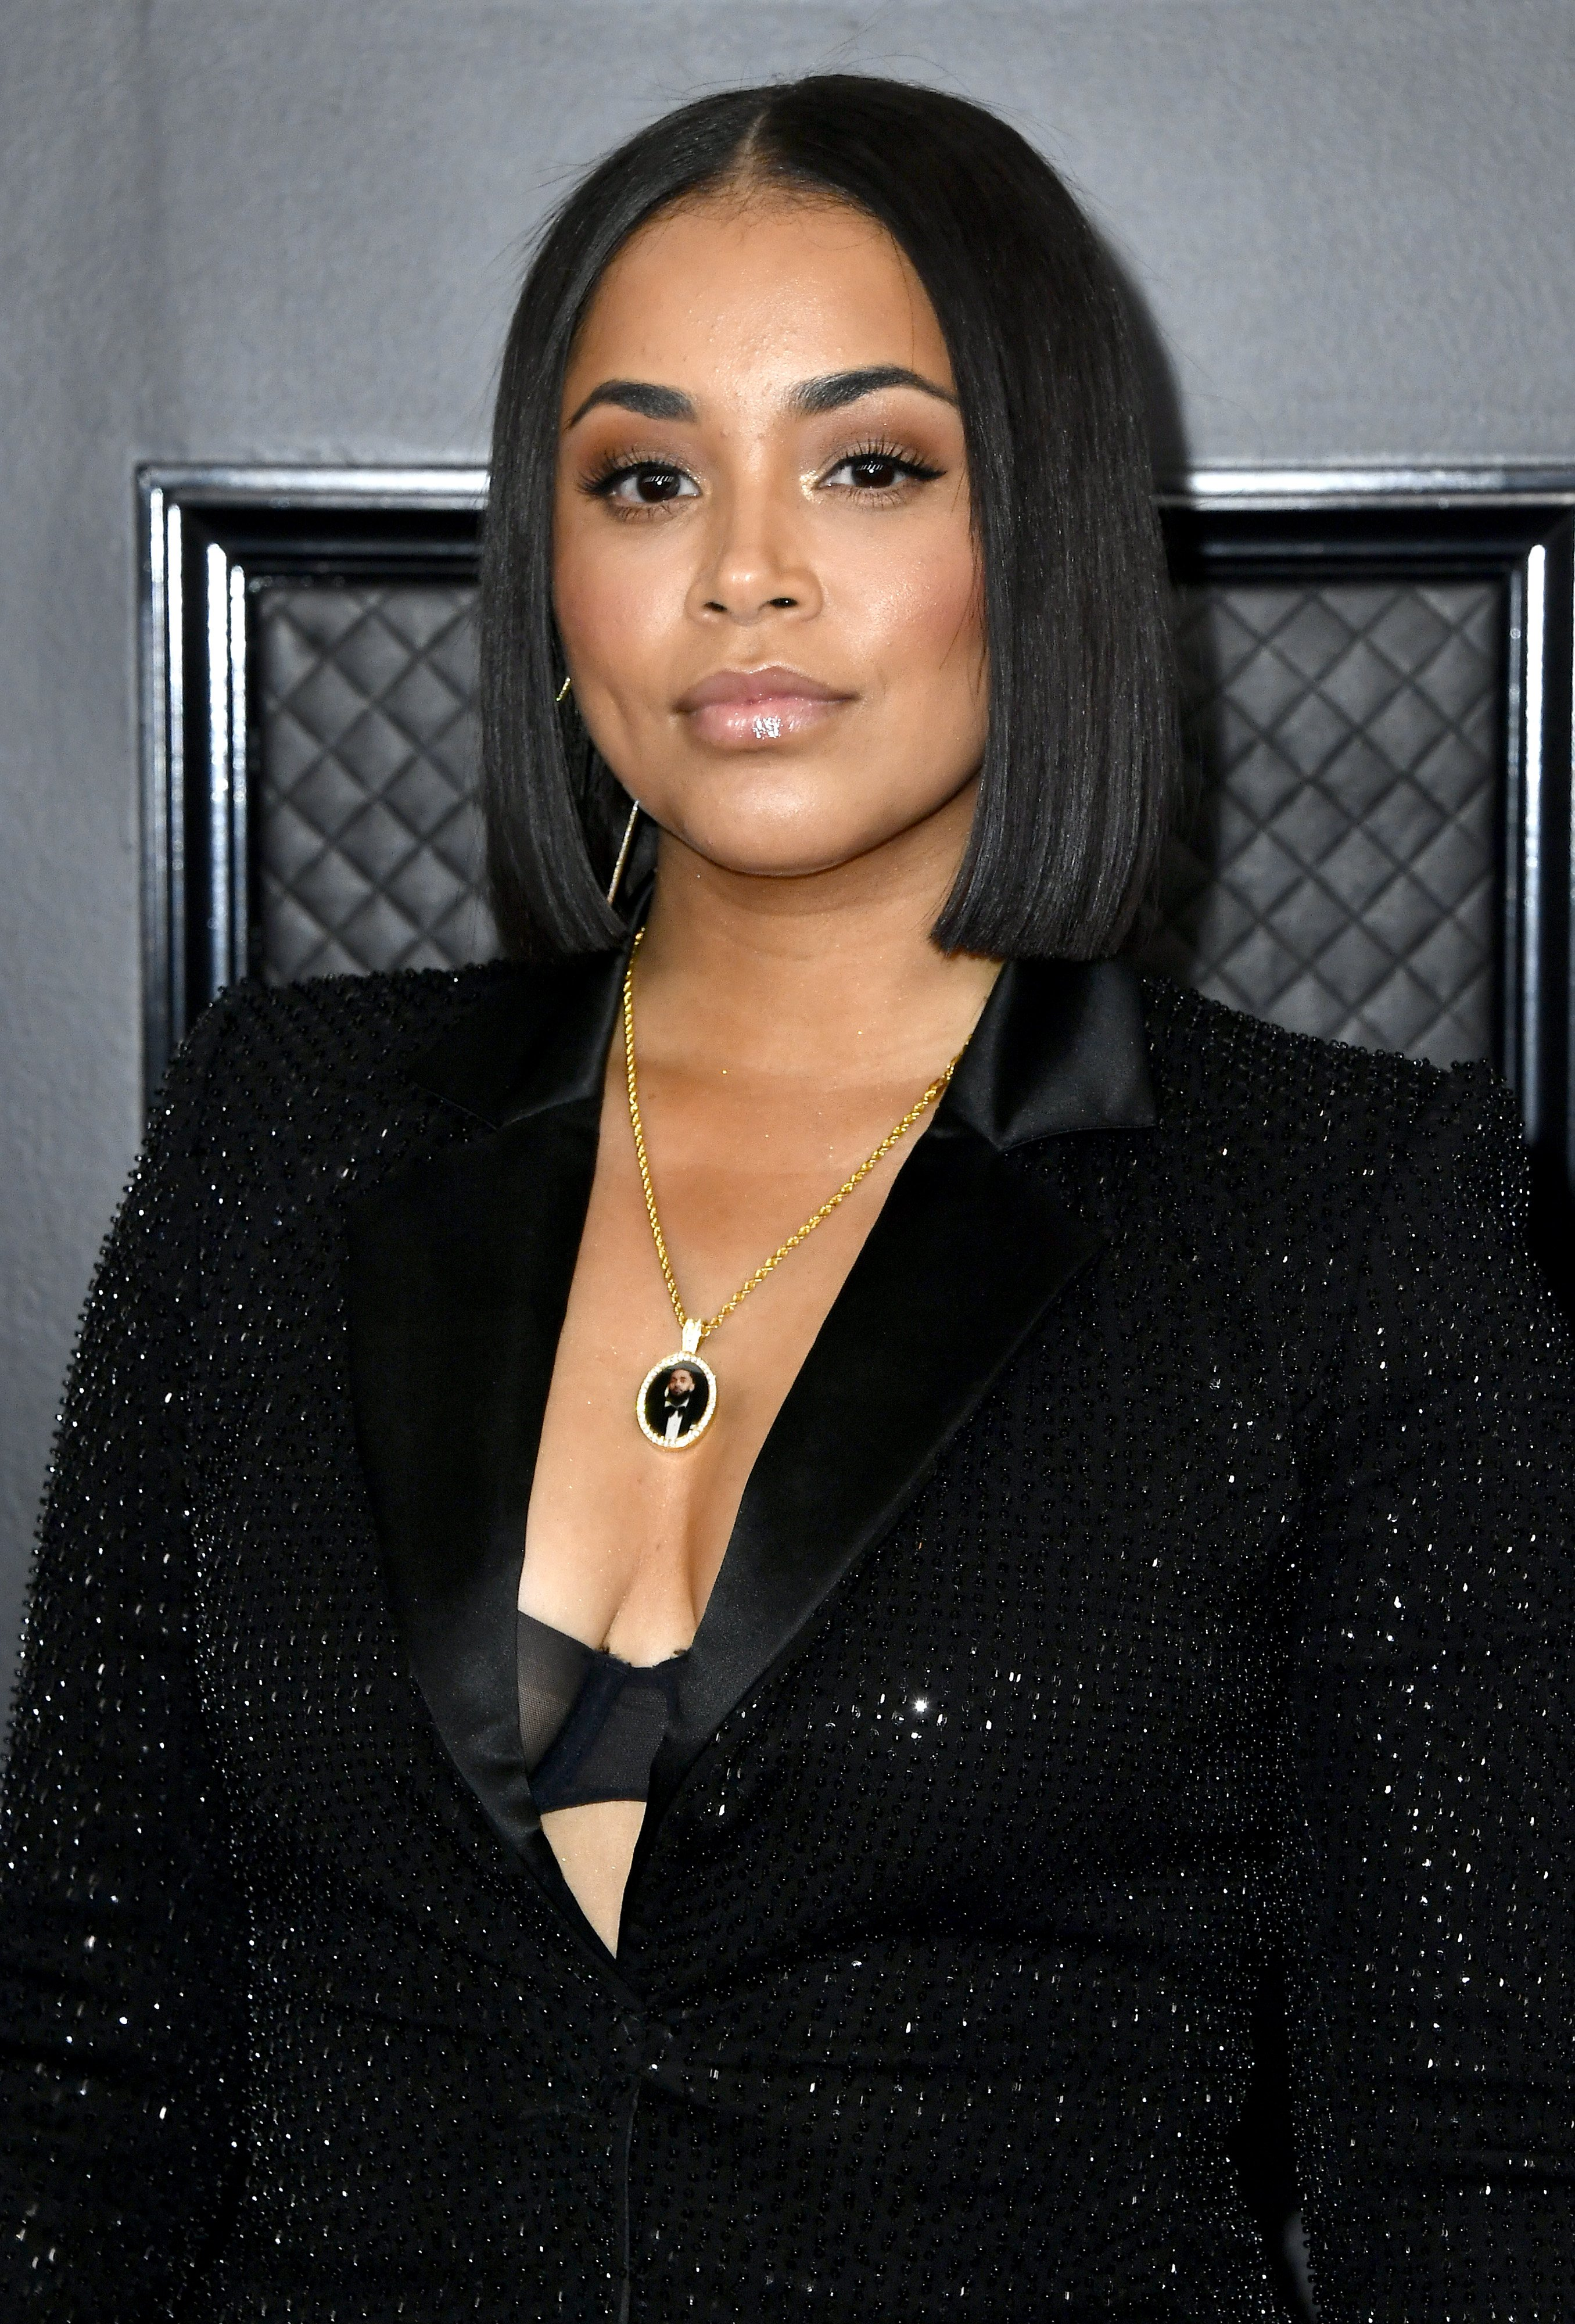 Lauren London pictured at the 62nd Annual Grammy Awards on January 26, 2020 in California | Photo: Getty Images